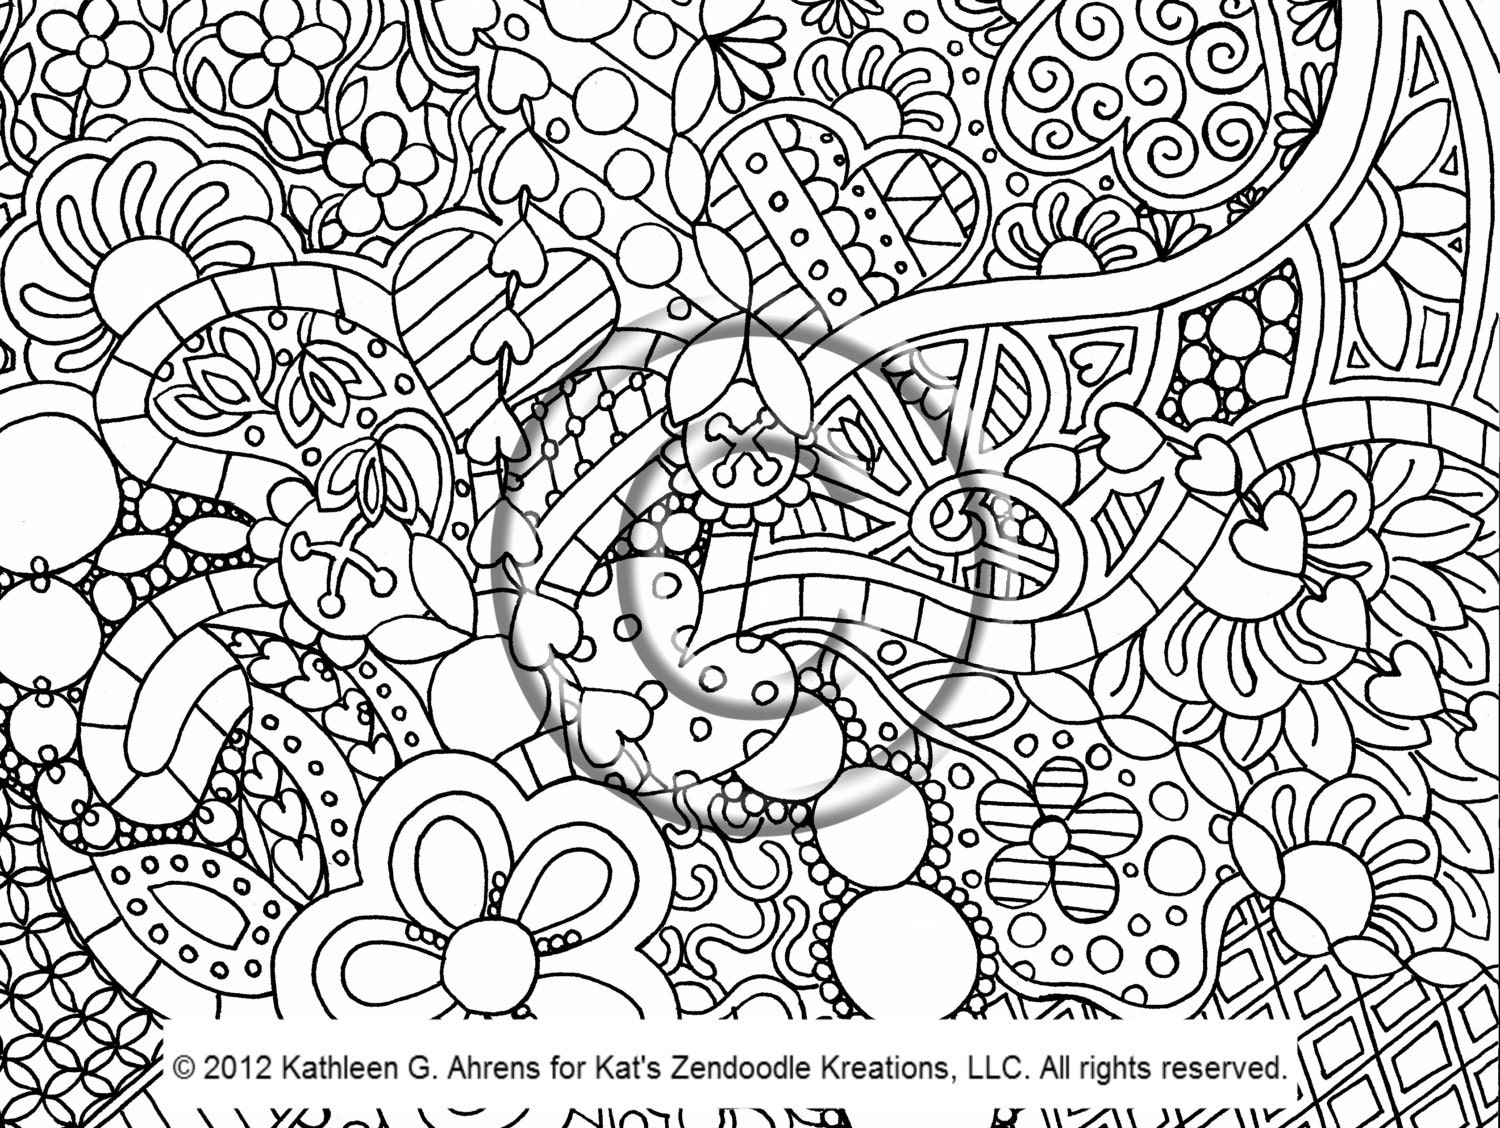 psychedelic coloring pages - photo#15